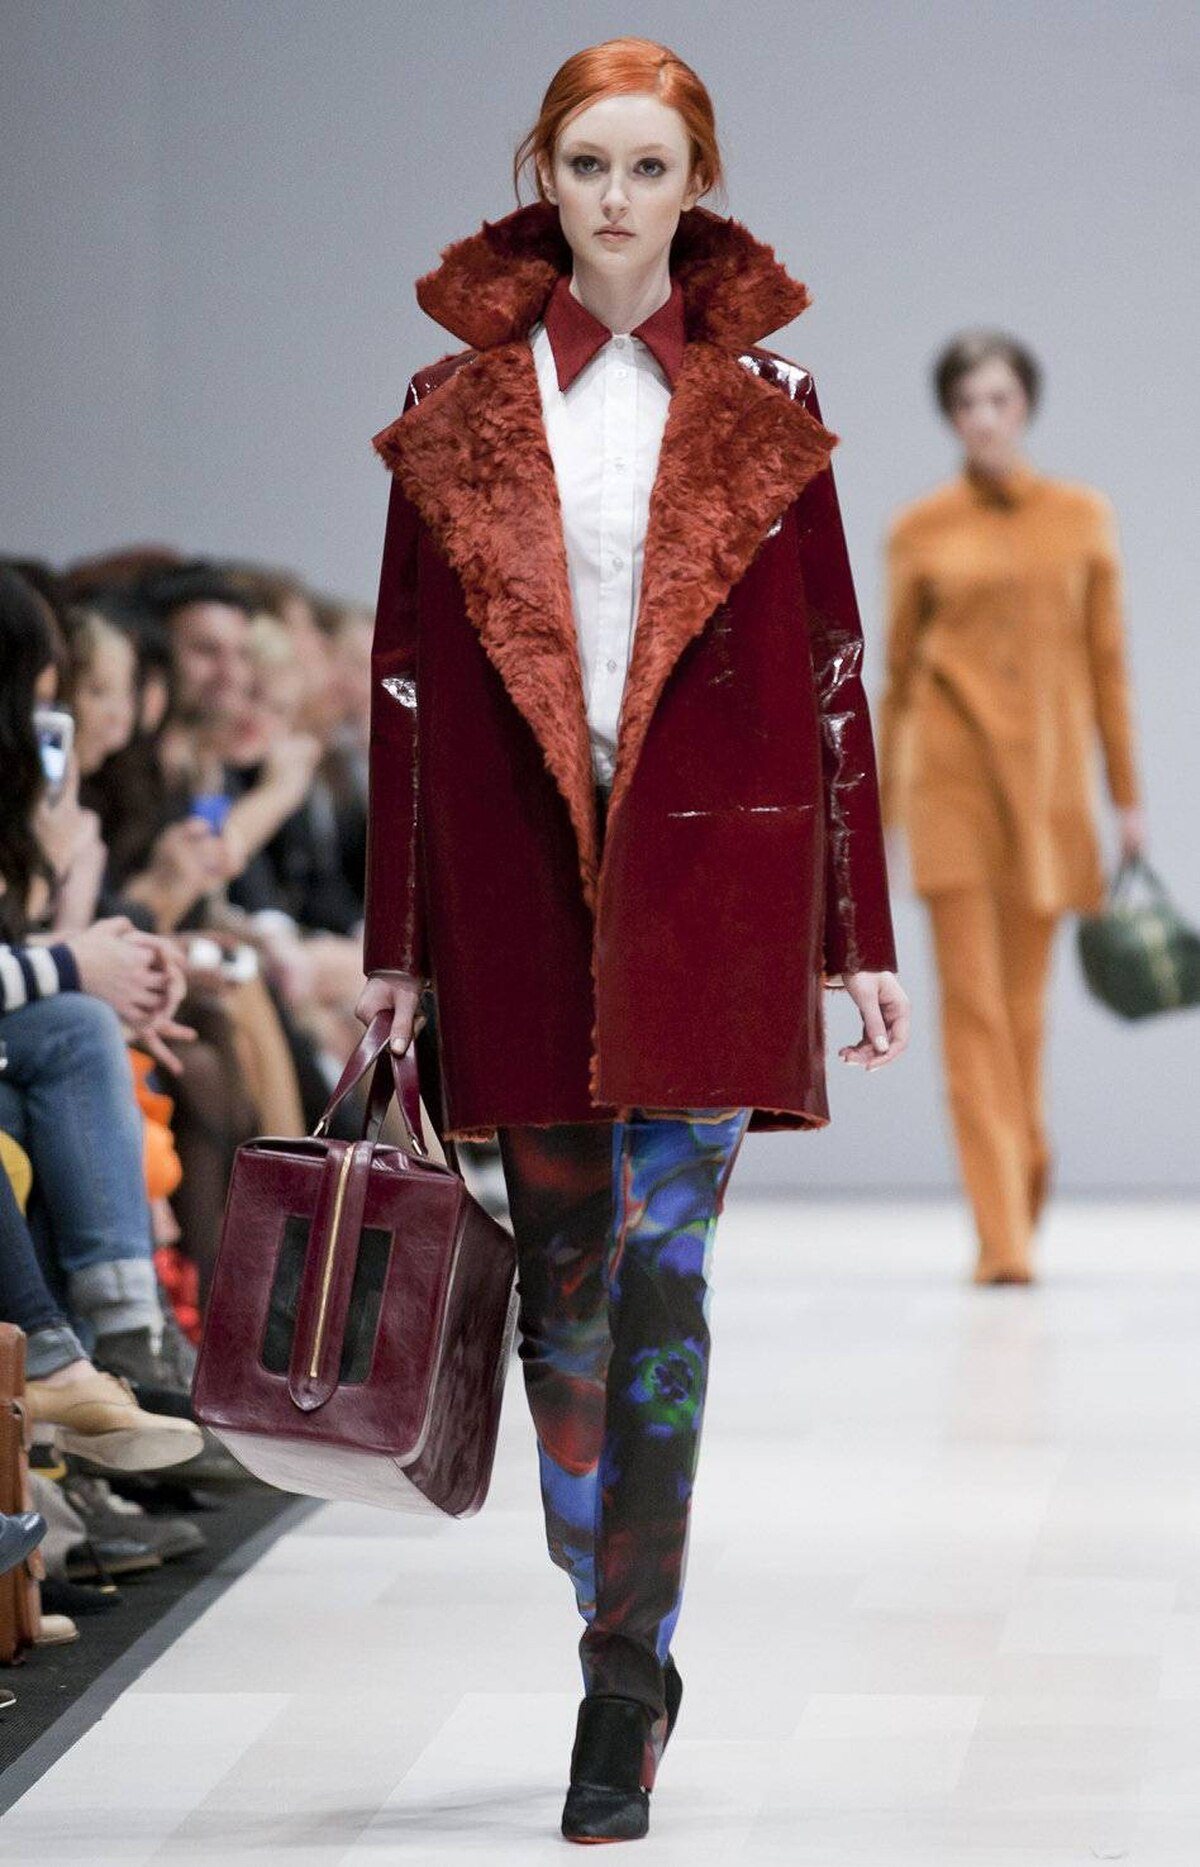 Accessories included big, woolly tuques in bright hues, furry details such as stoles and structured purses both big and small (with one burgundy bag so large it could double as a cat carrier).